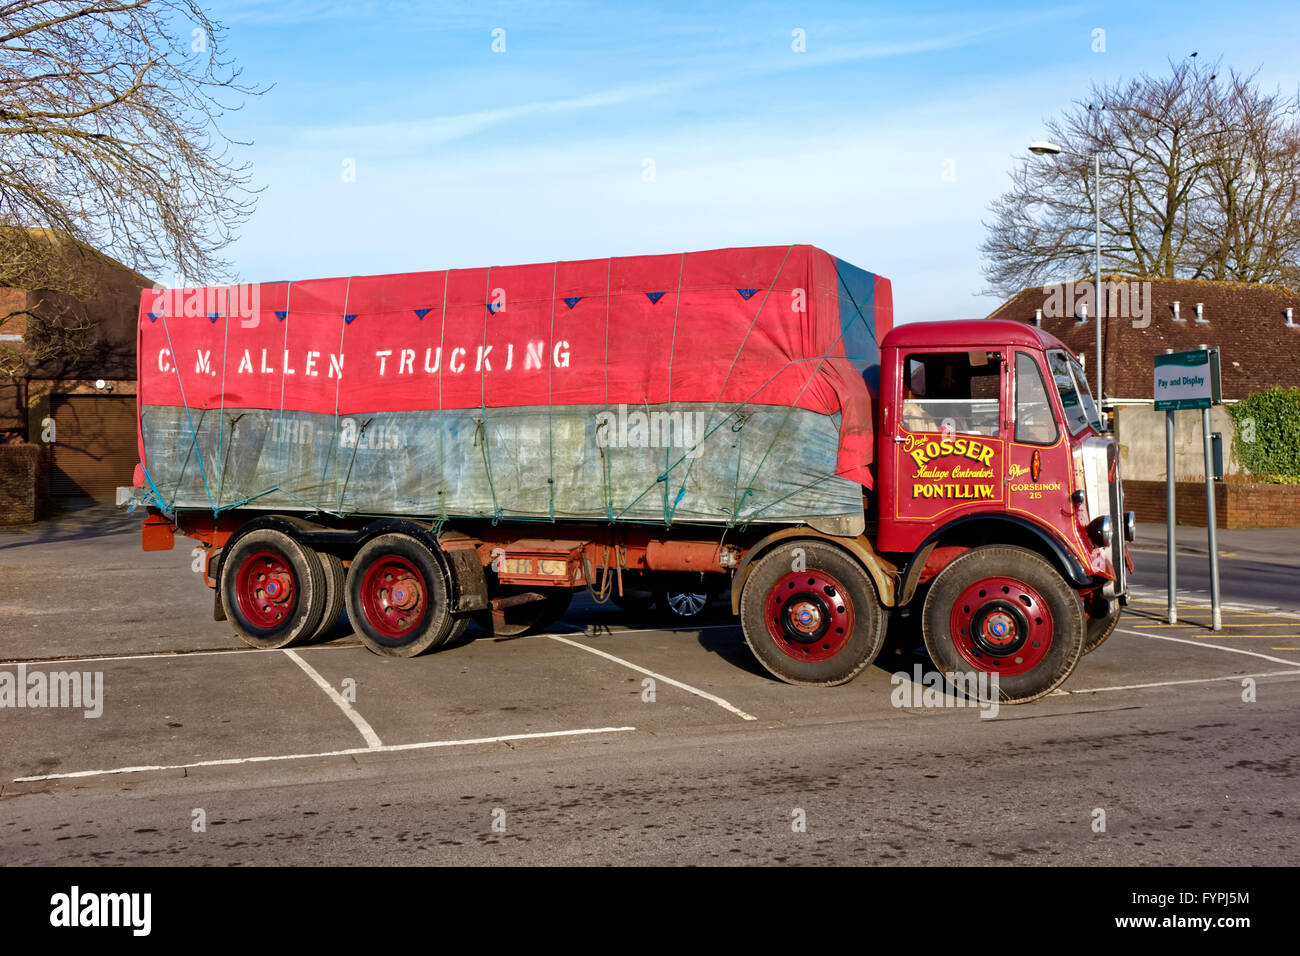 1949 AEC Mammoth Major, registration number, JNY 484, at the Warminster Central Car Park, Wiltshire, United Kingdom. - Stock Image